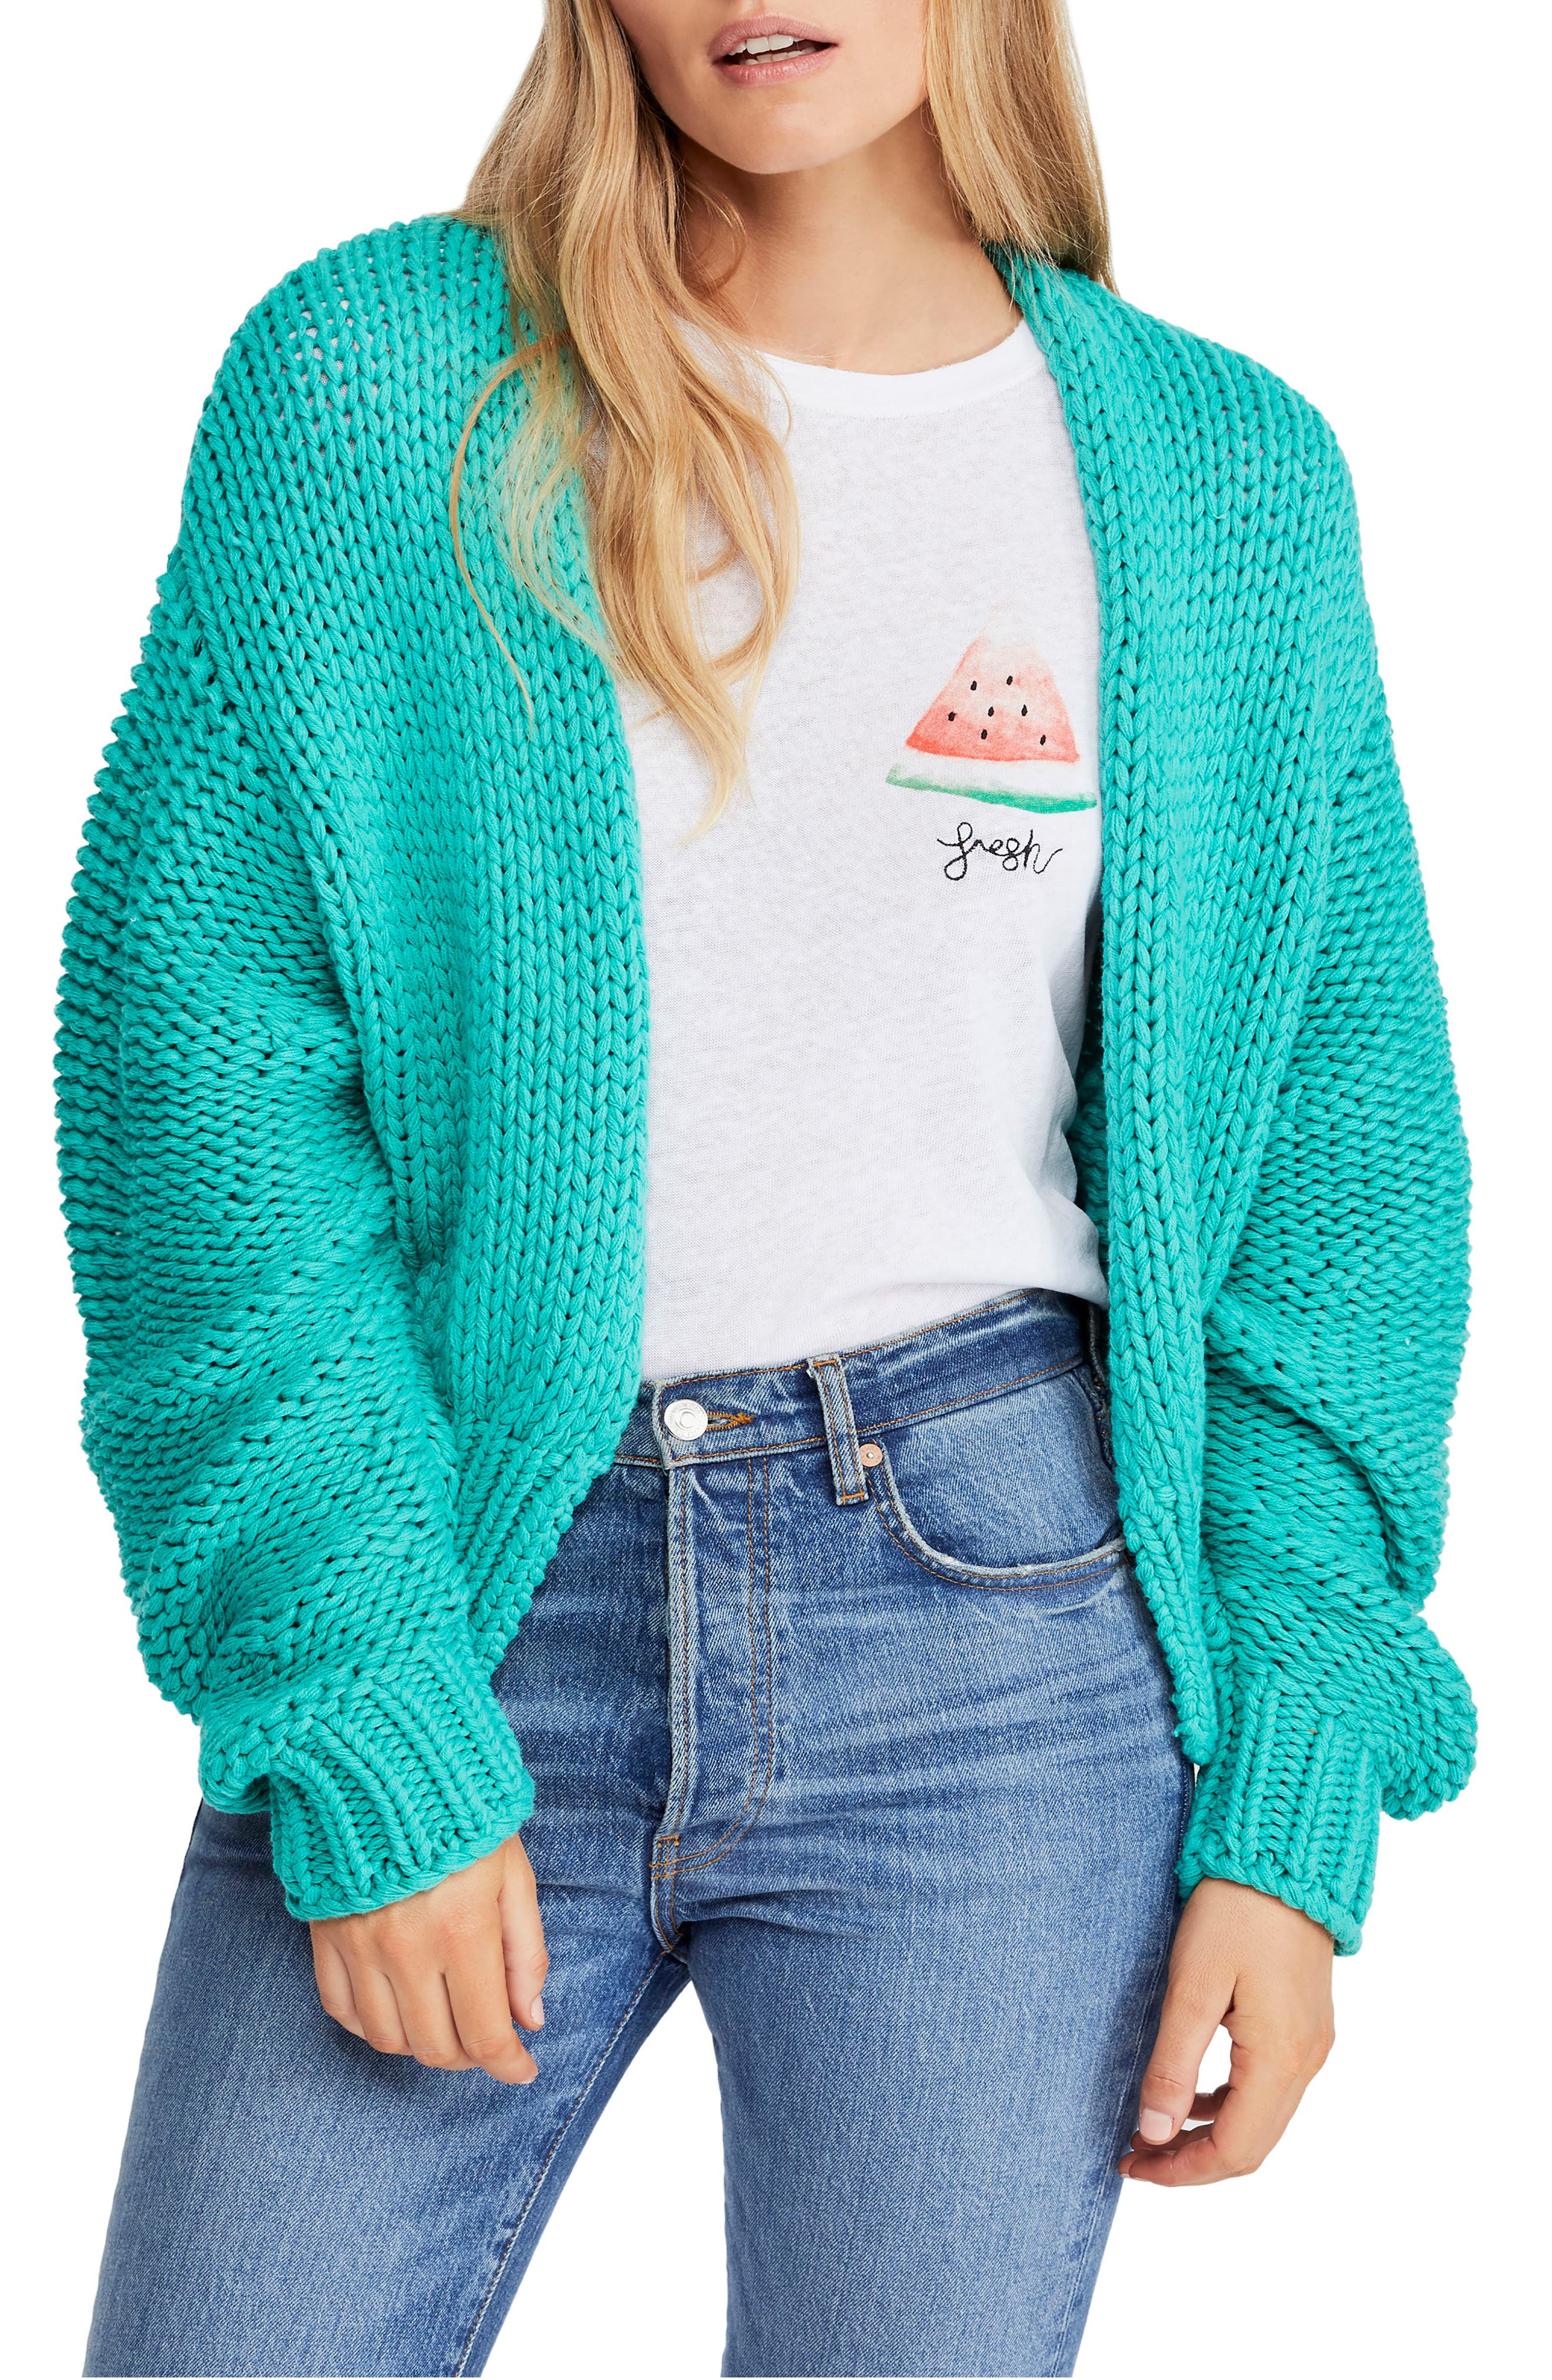 FREE PEOPLE, Glow For It Cardigan, Main thumbnail 1, color, 440